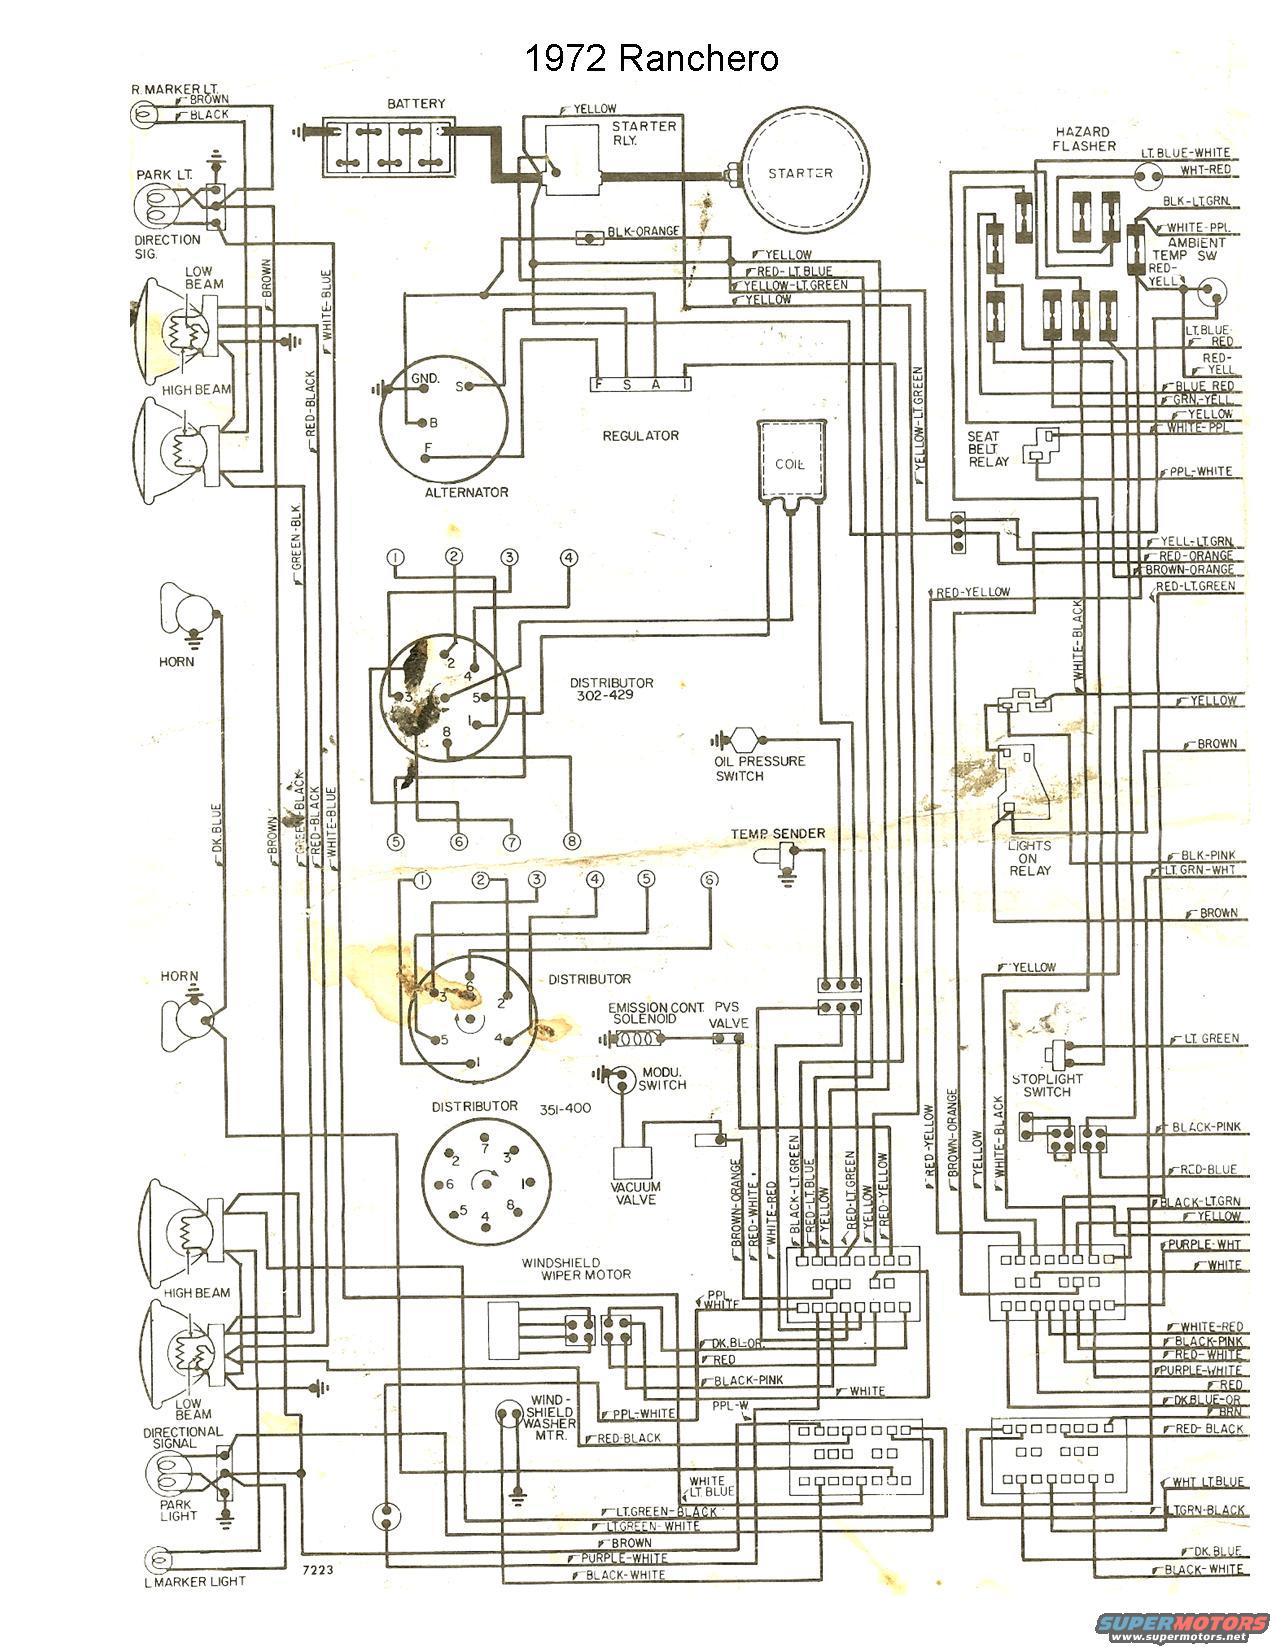 1978 Ford Ranchero Alternator Wiring Diagram Question About Explorer 72 76 Diagrams Us Rh 1976